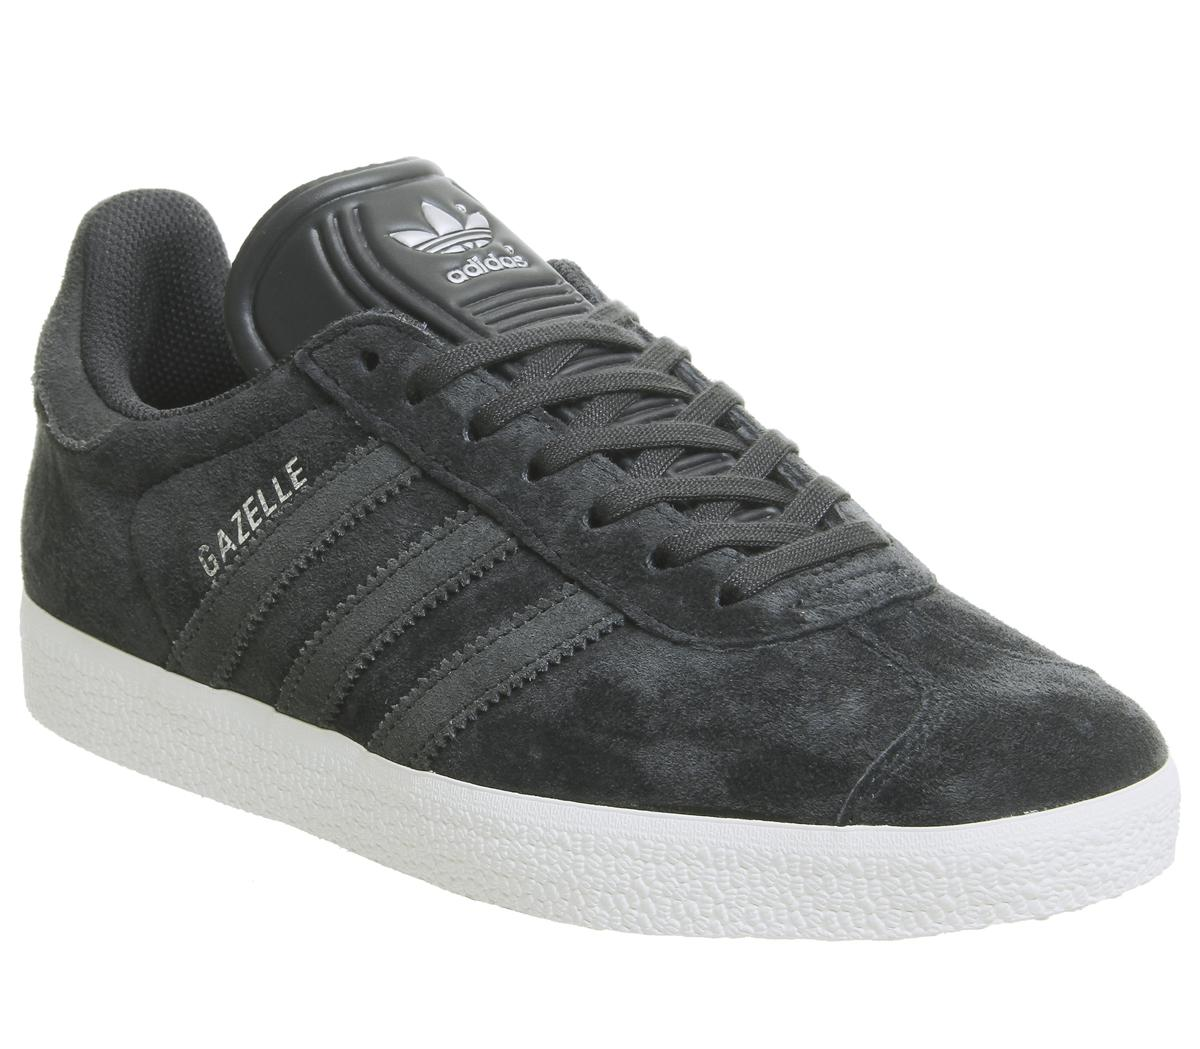 size 40 ae391 07cea adidas Gazelle Trainers Night Grey Carbon Silver Exclusive - Unisex ...